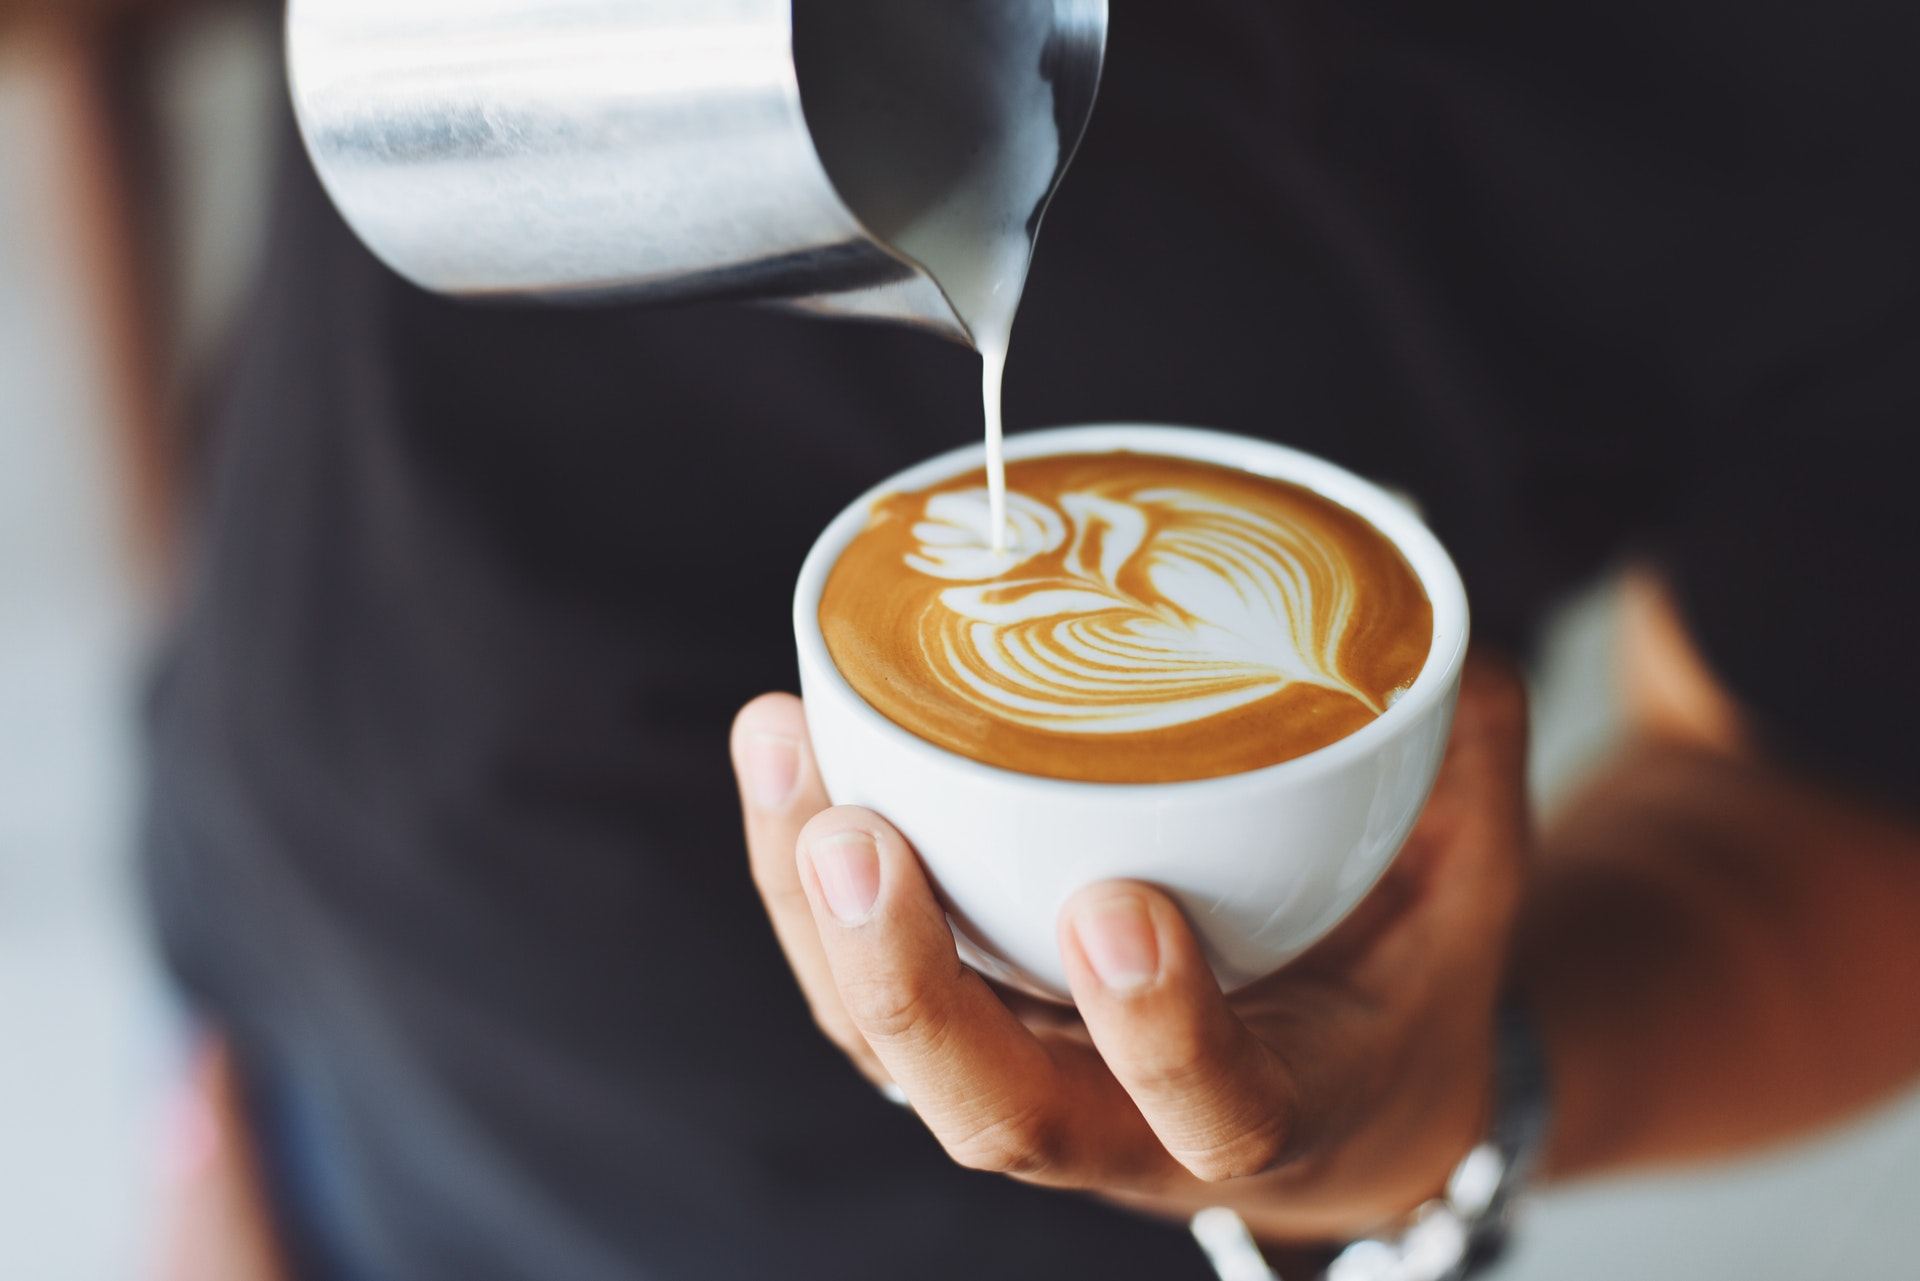 How to Froth Milk: 5 Easy Ways To Try